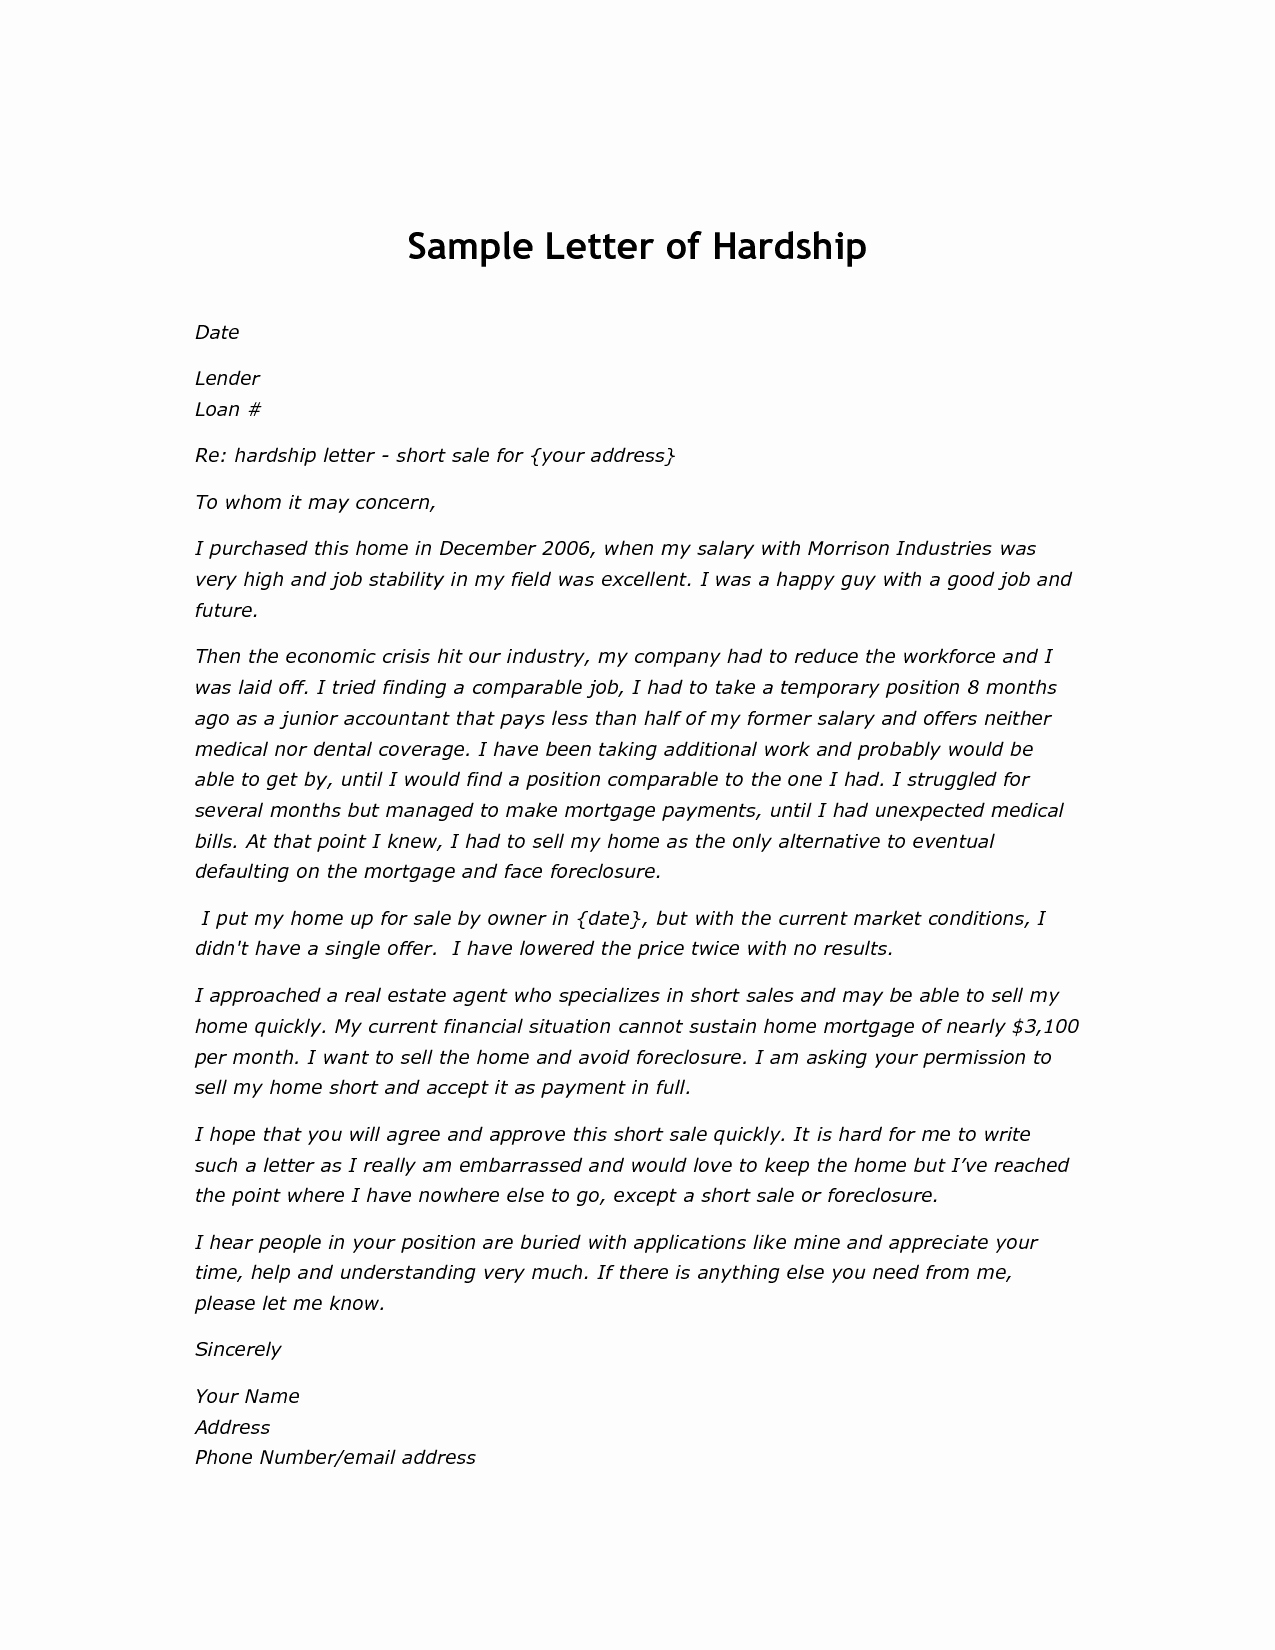 Short Sale Hardship Letter Template Elegant Best S Of Short Sale Letter Example Short Sale